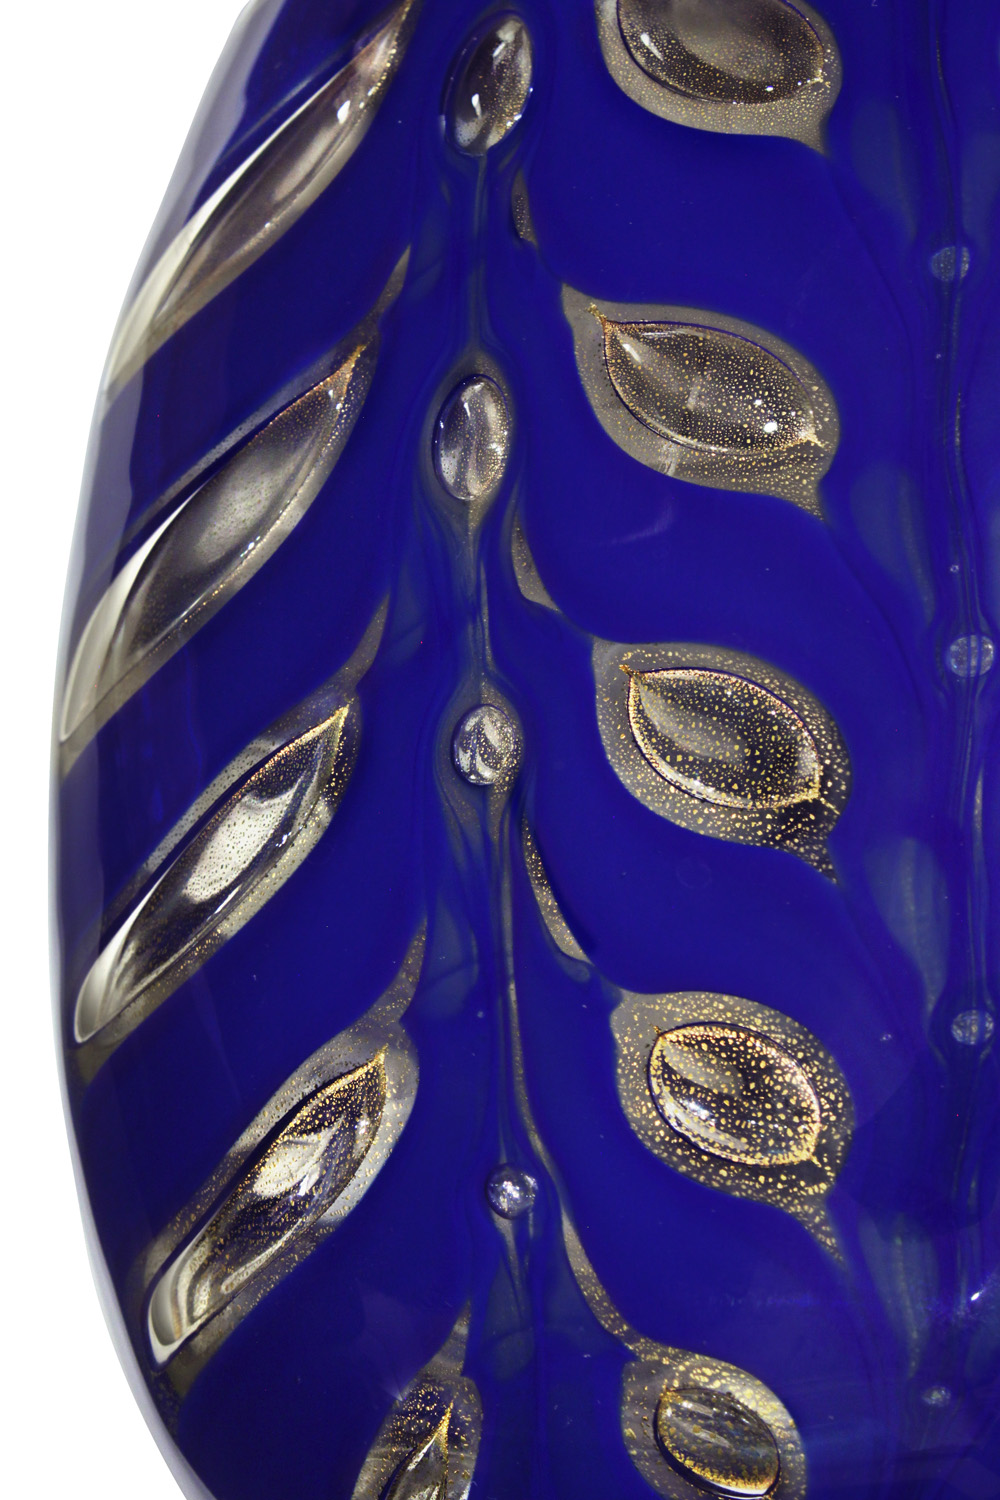 Barovier 45 Graffito blue glass76 detail4 hires.jpg